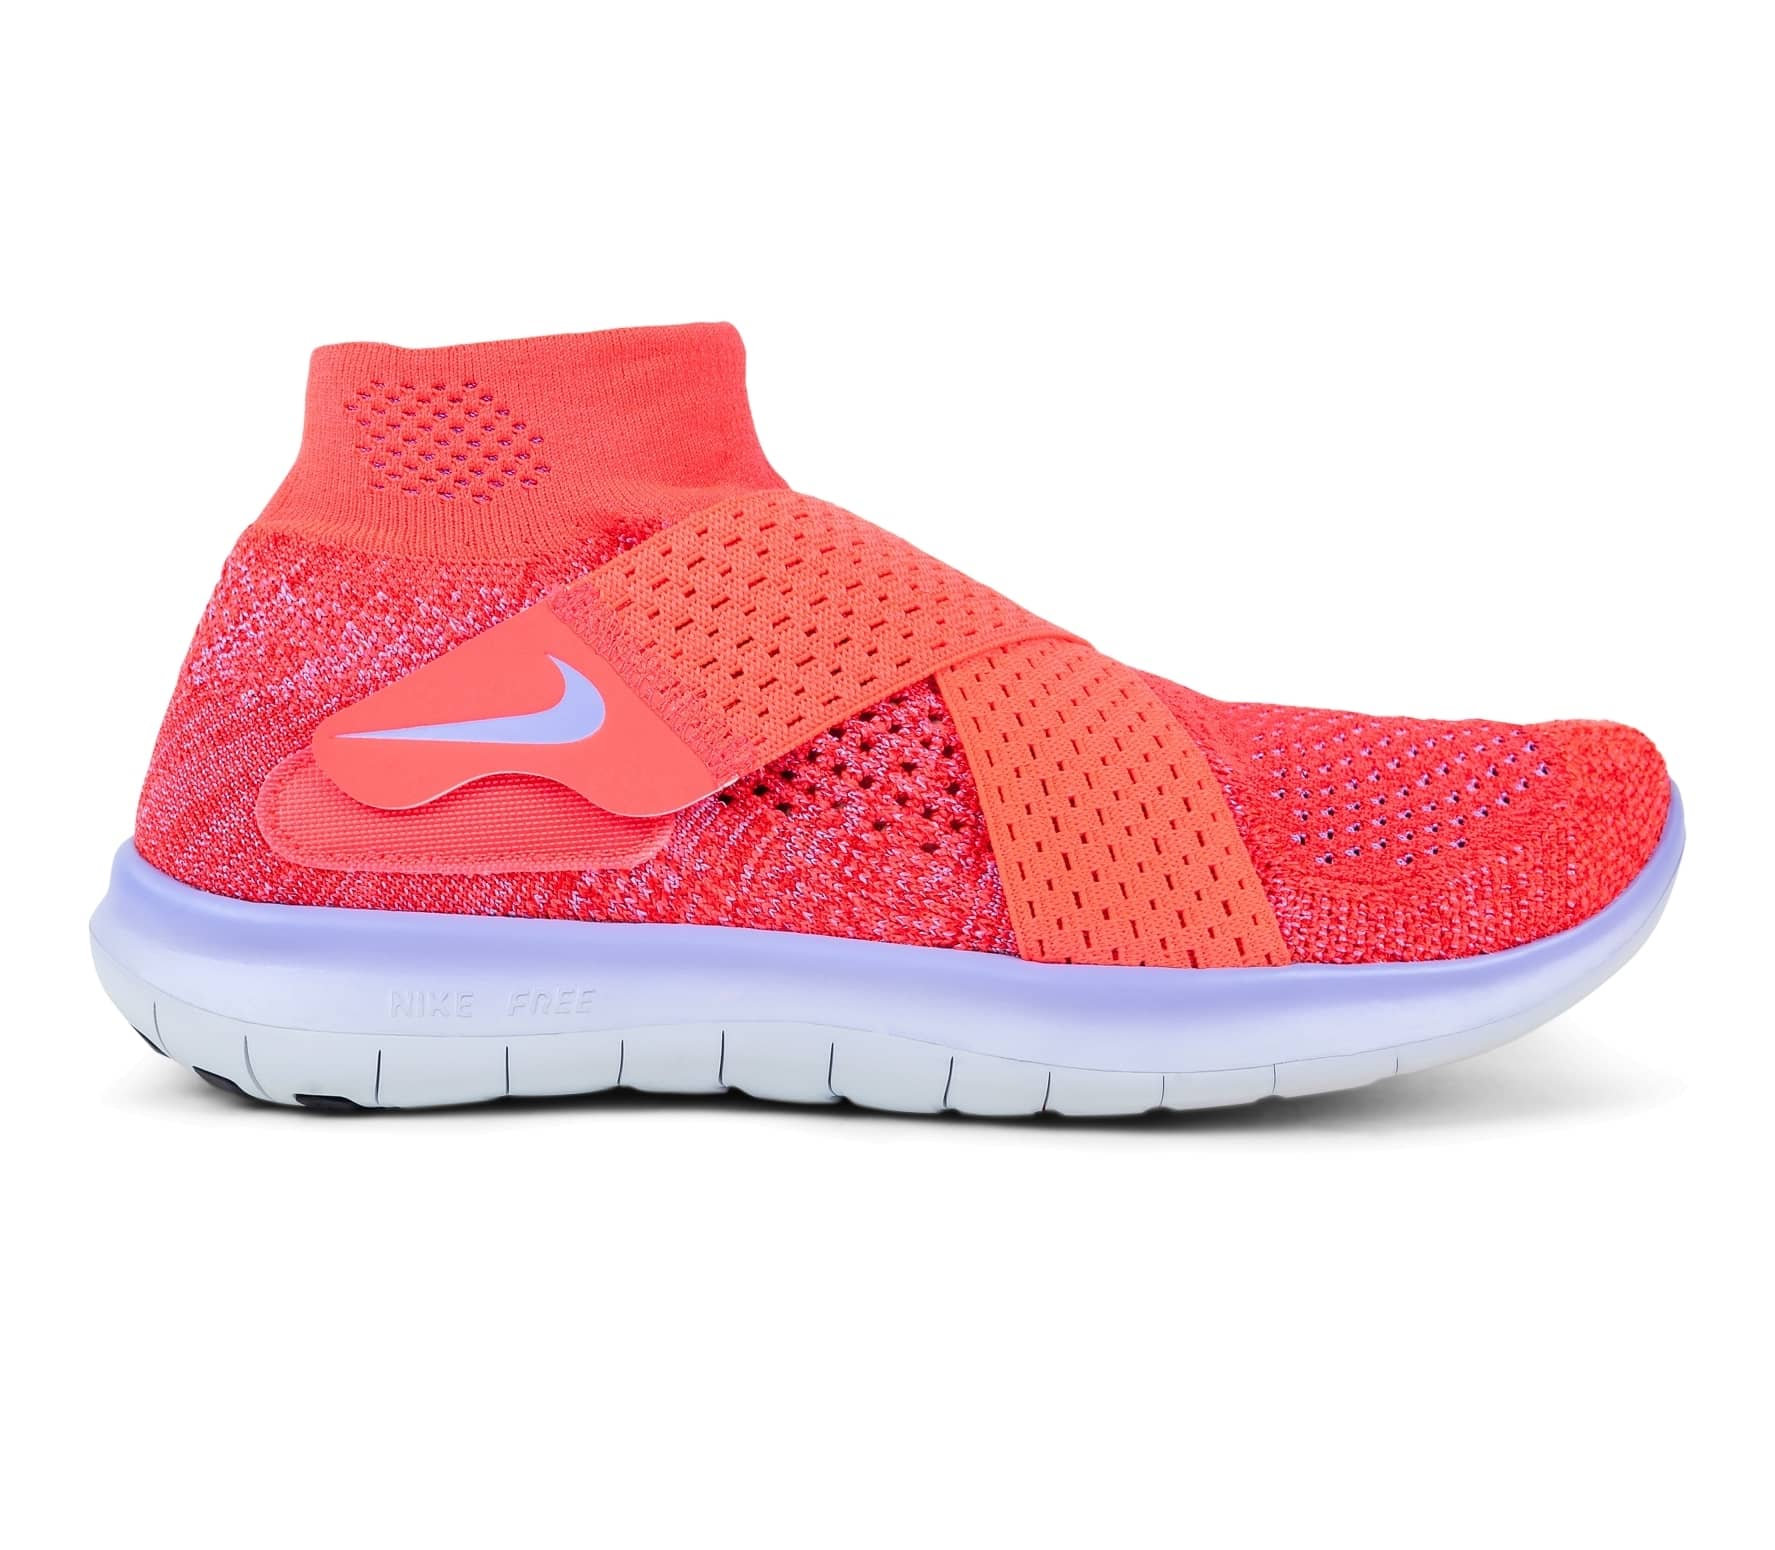 28aad6b38153a Nike - Free RN Motion Flyknit 2017 women s running shoes (pink ...